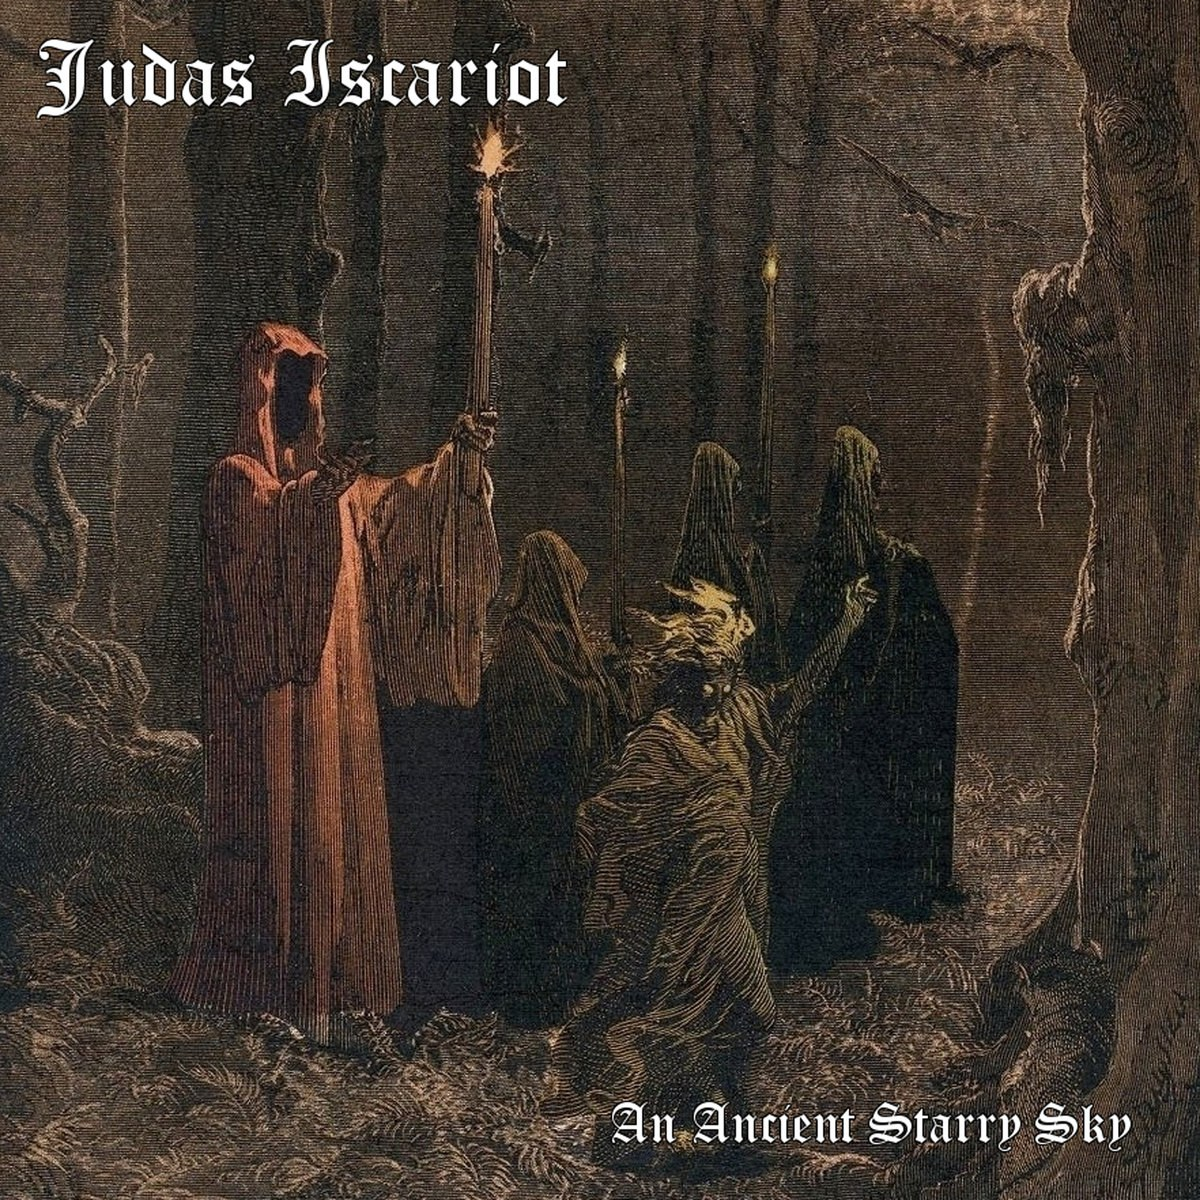 Review for Judas Iscariot - An Ancient Starry Sky